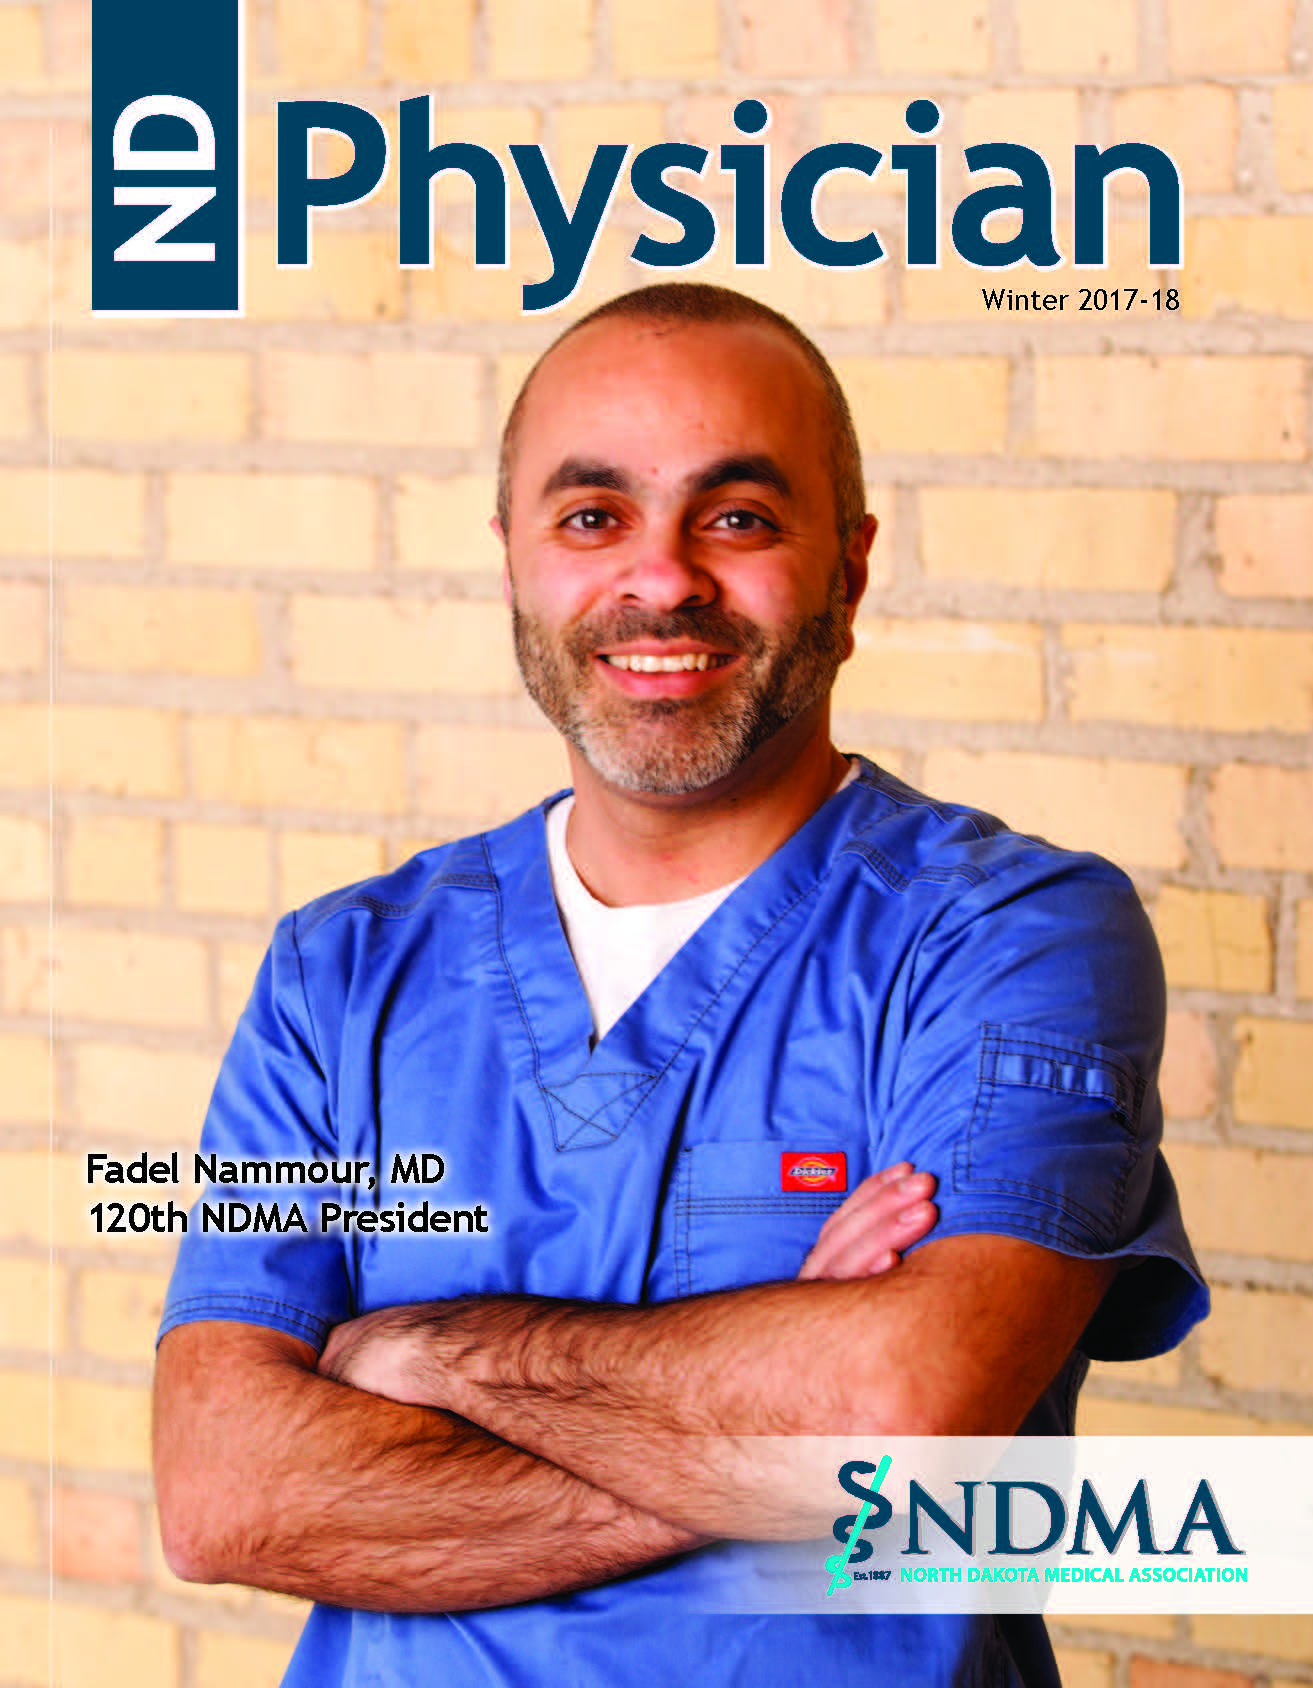 ND Physician Winter 2017-18 magazine cover